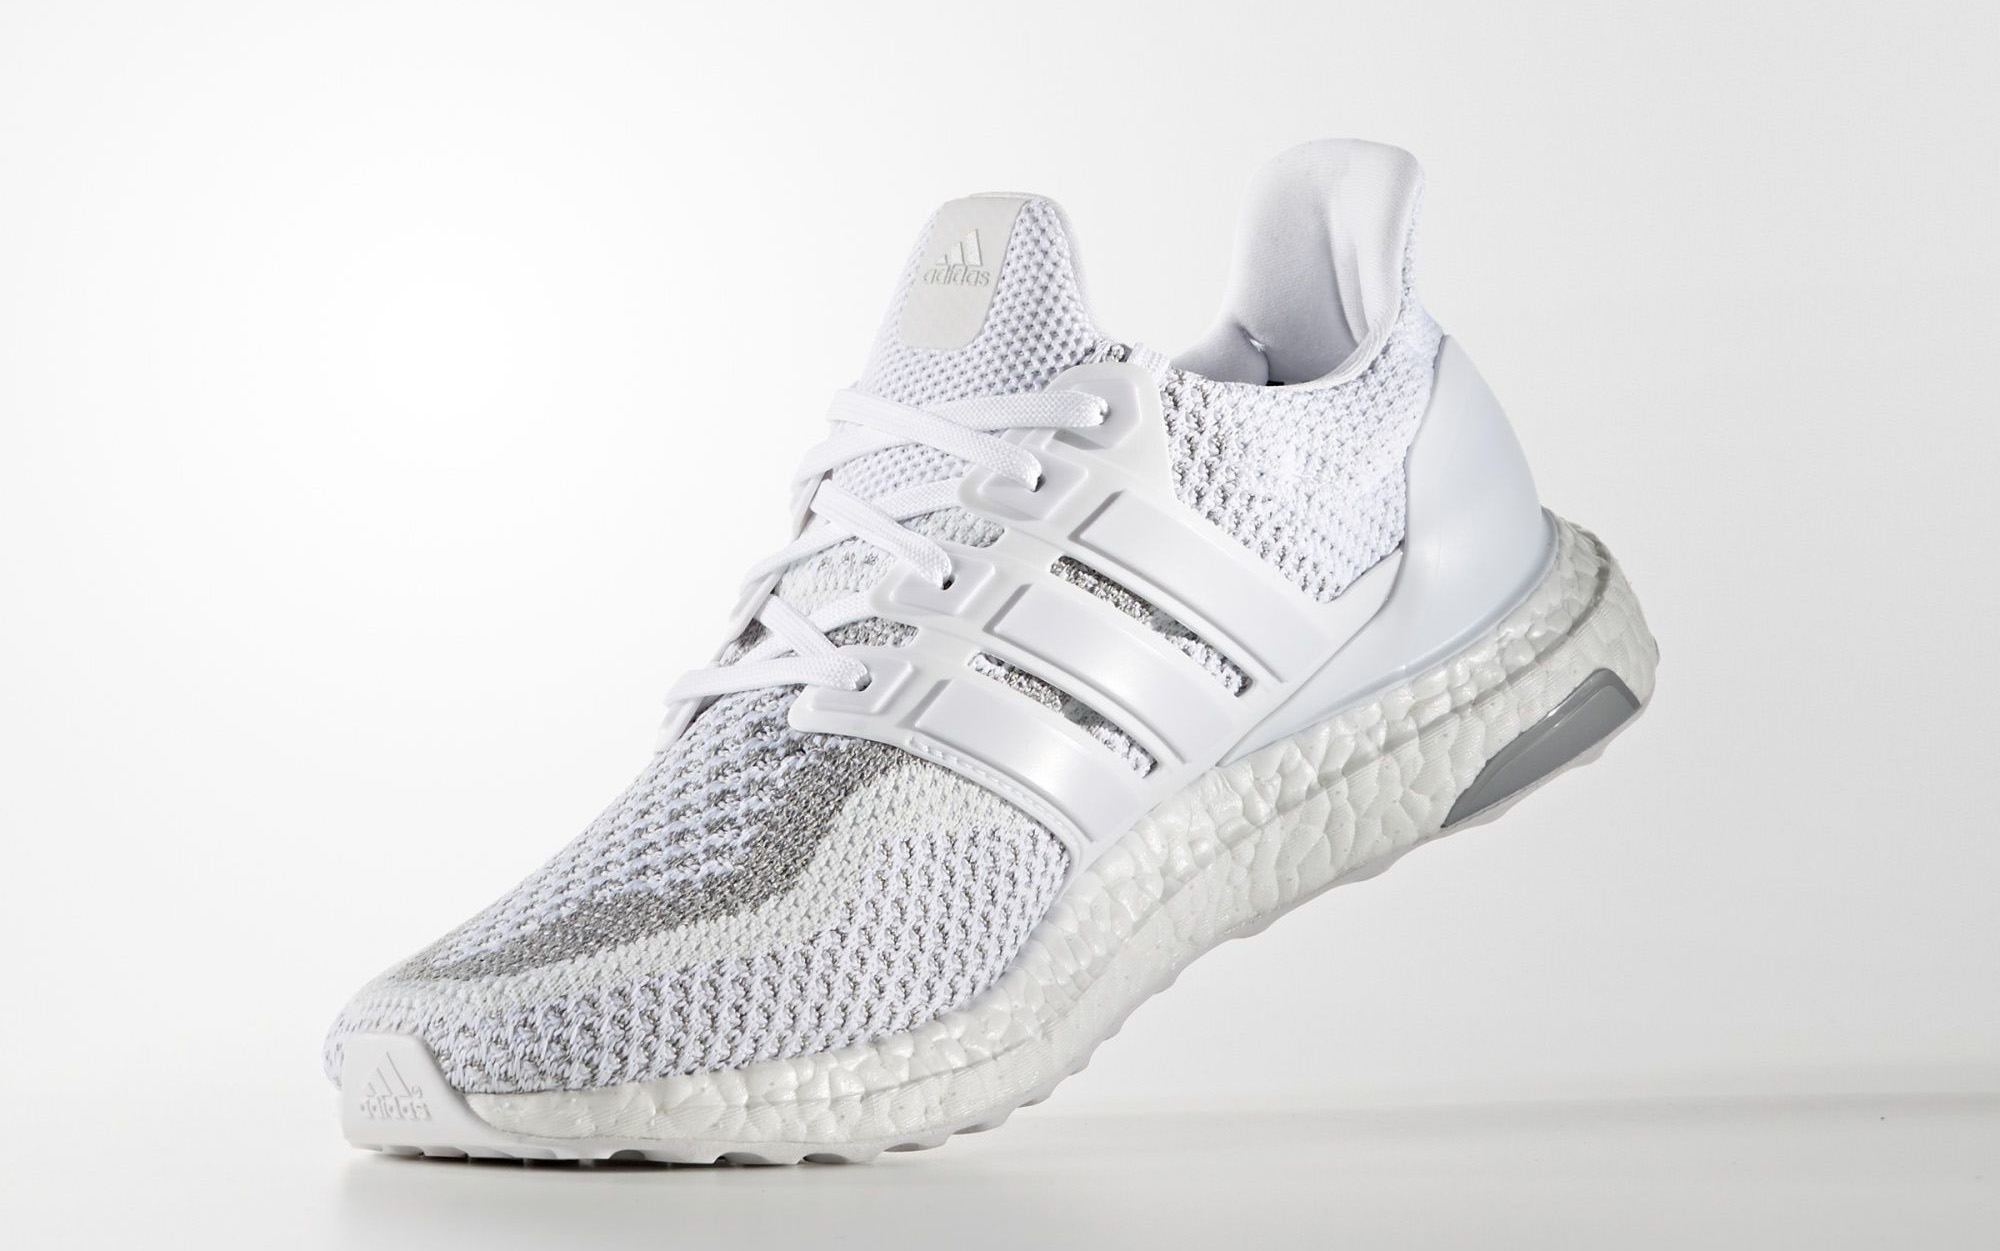 White Adidas Ultra Boost Reflective Medial